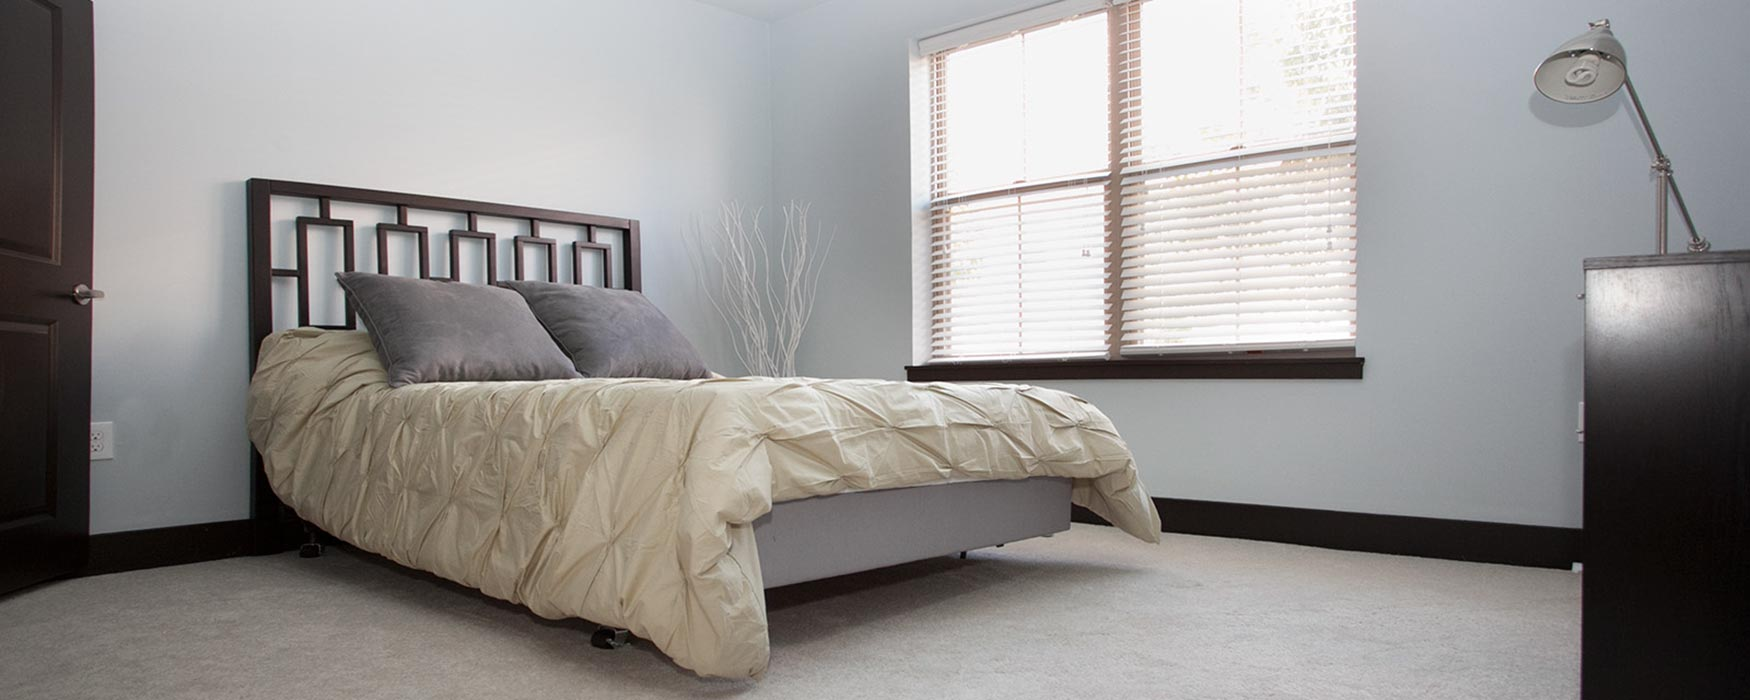 LC Riversouth | Downtown Columbus Apartments | Georgetown Bedroom